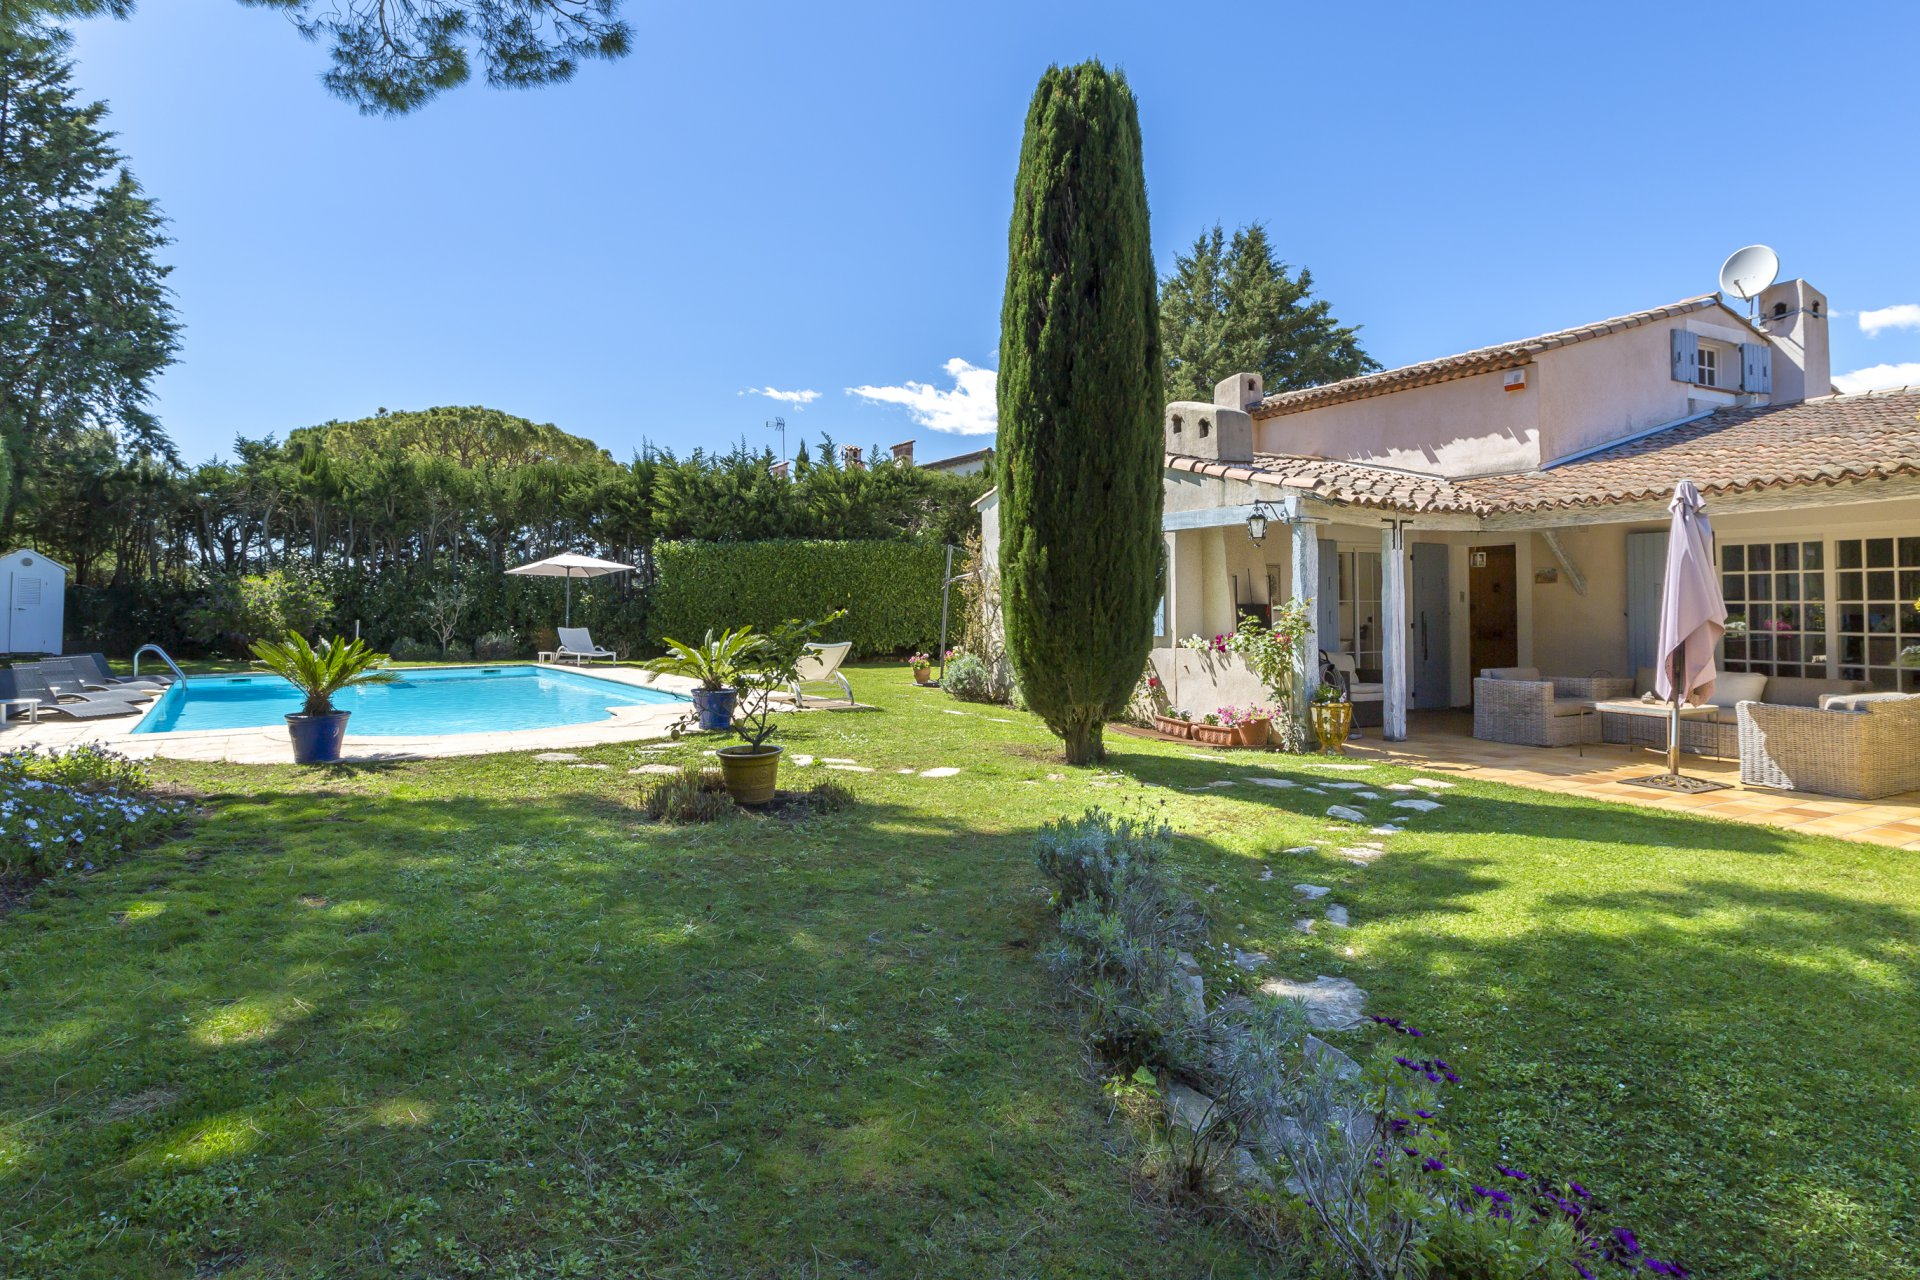 Antibes: Classic, 5-bed Provençal villa with 2-bed guest apartment